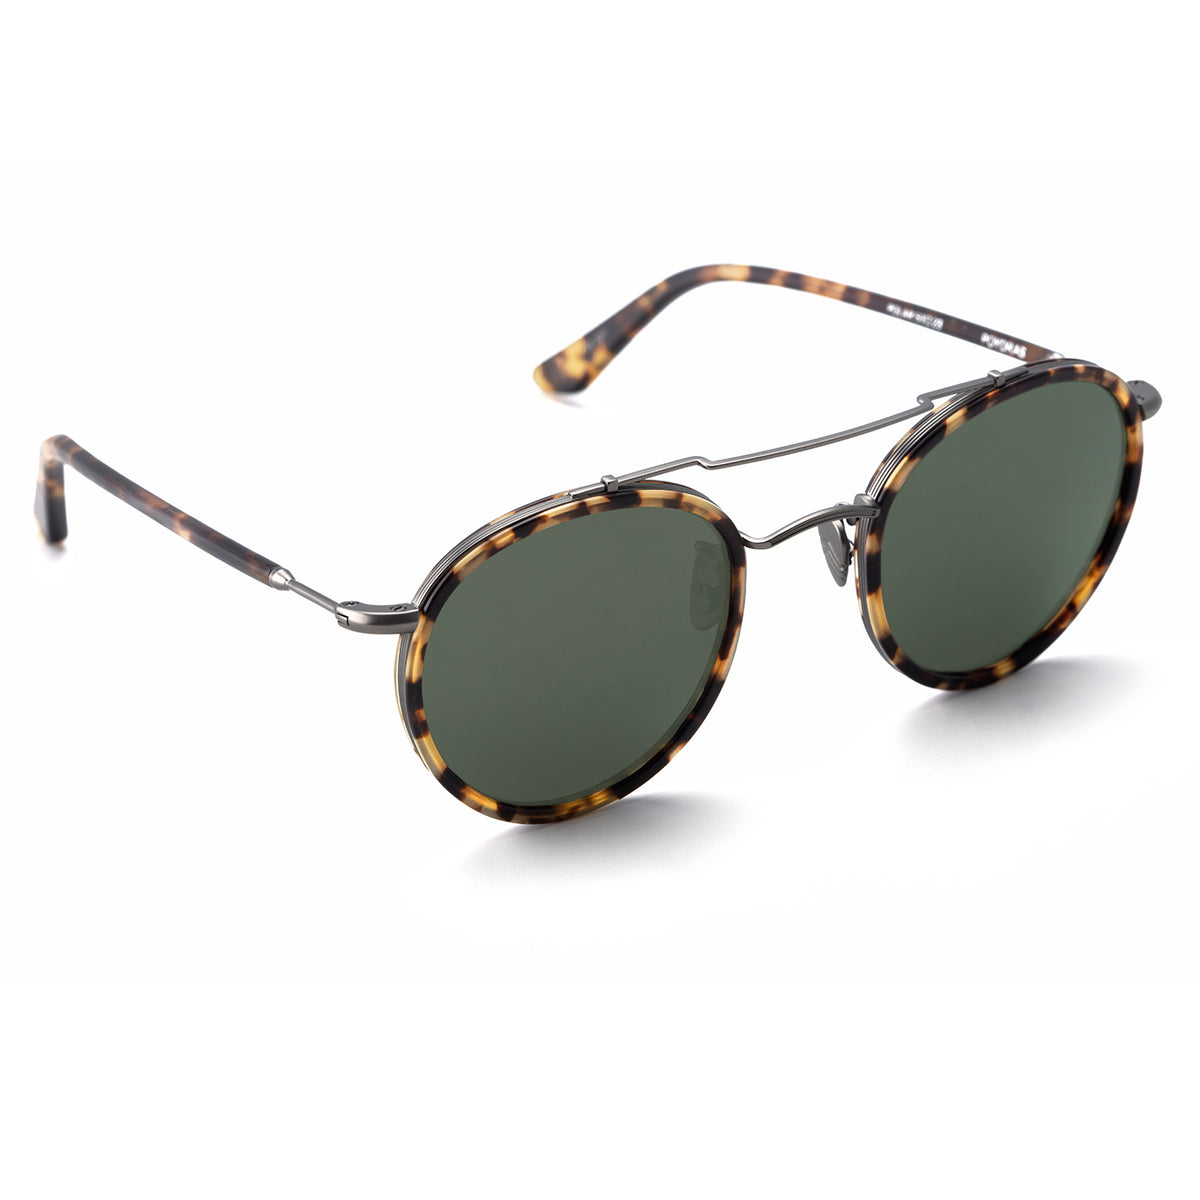 POYDRAS | Matte Bengal Polarized handcrafted acetate sunglasses